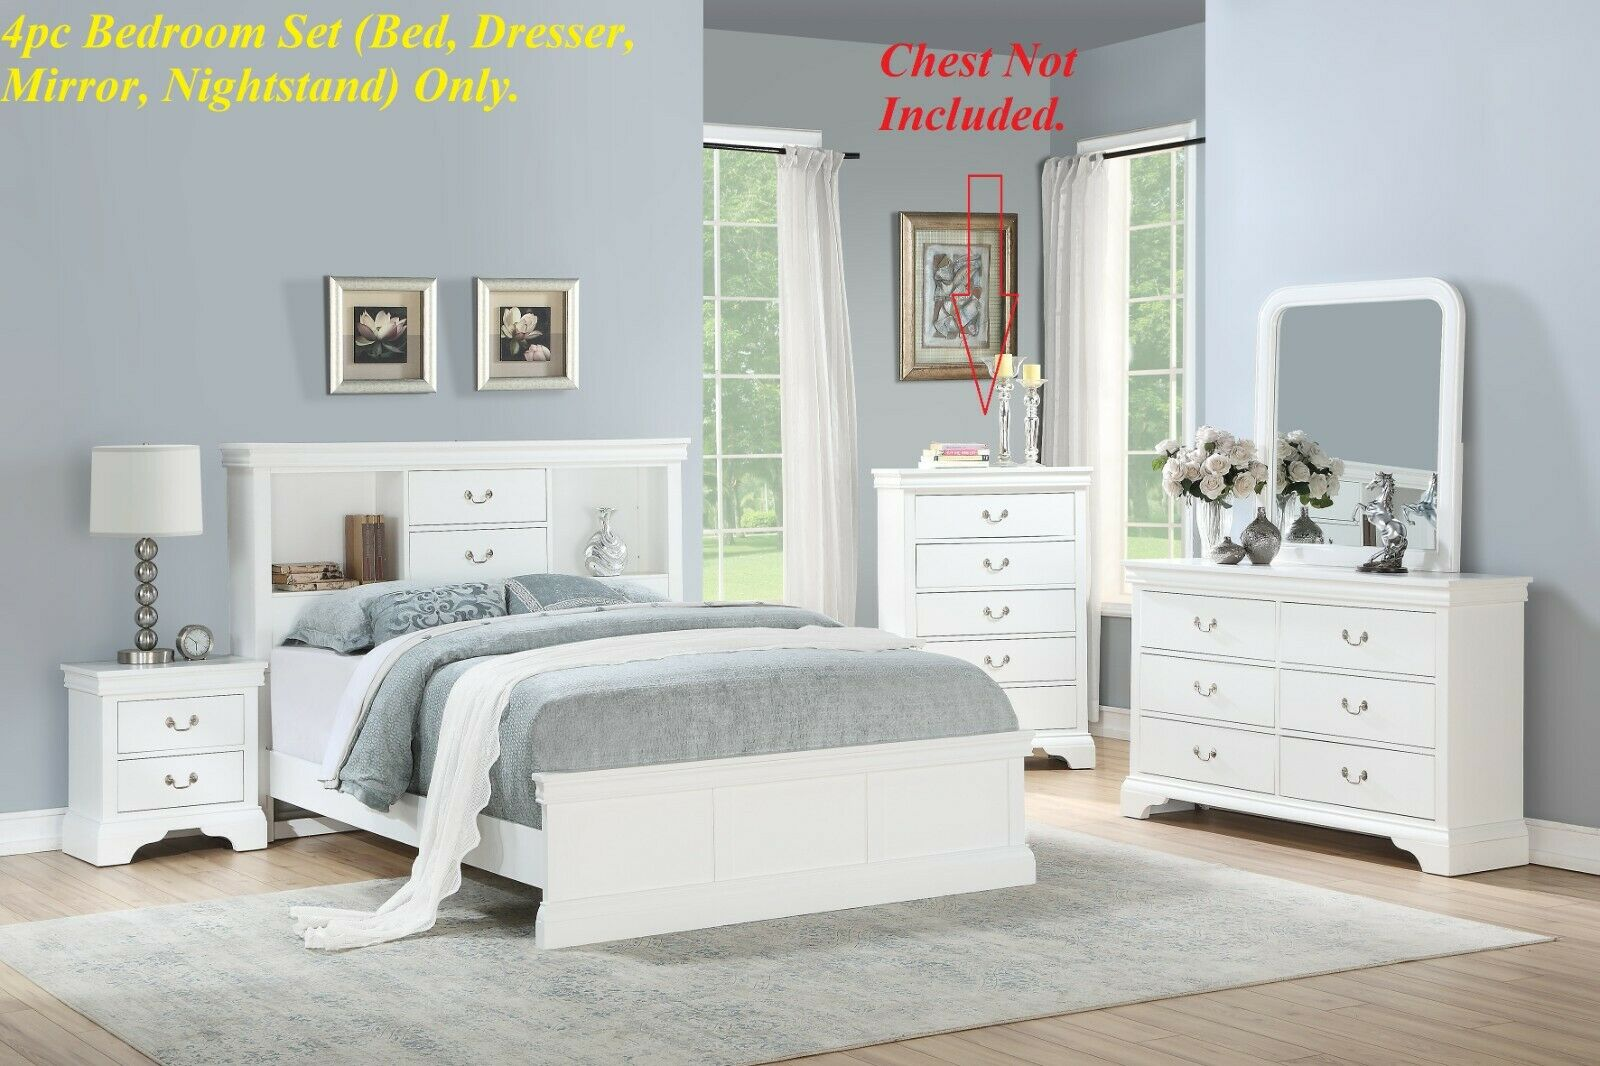 Bed Dresser Mirror Nightstand Queen Size Home Wooden Bedroom Furniture Cherry For Sale Online Ebay